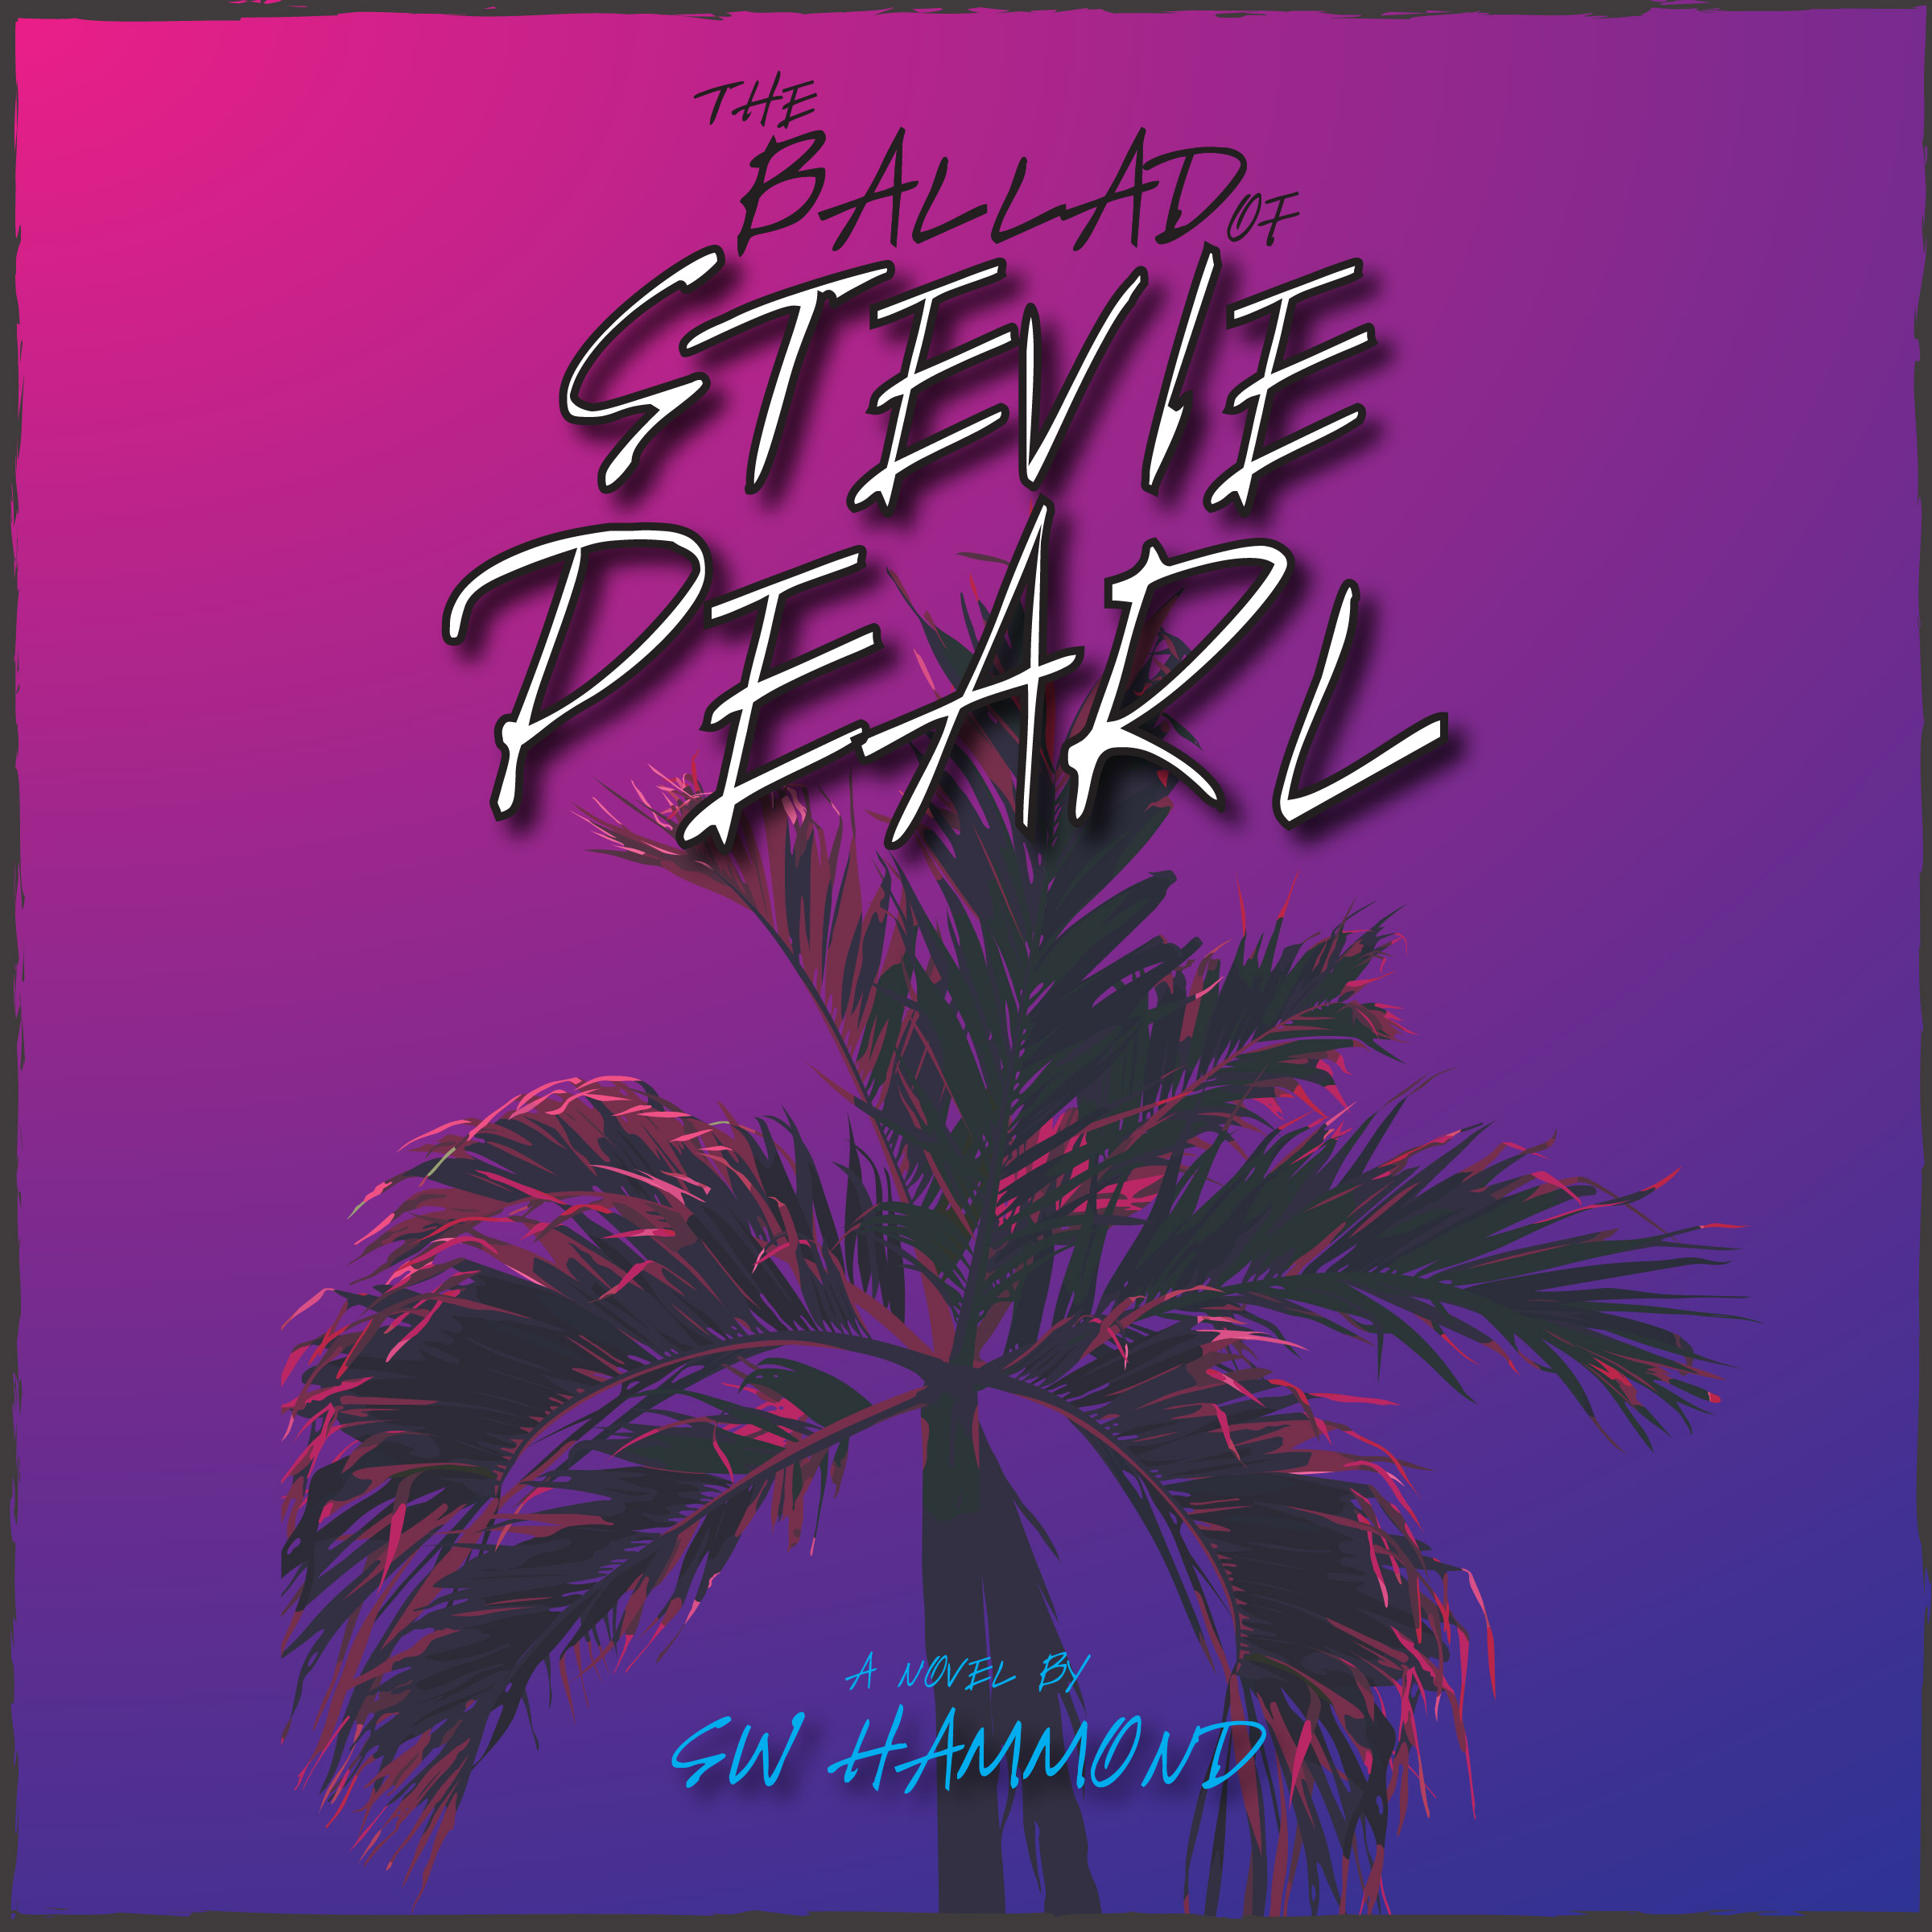 The Ballad of Stevie Pearl - Soundtrack